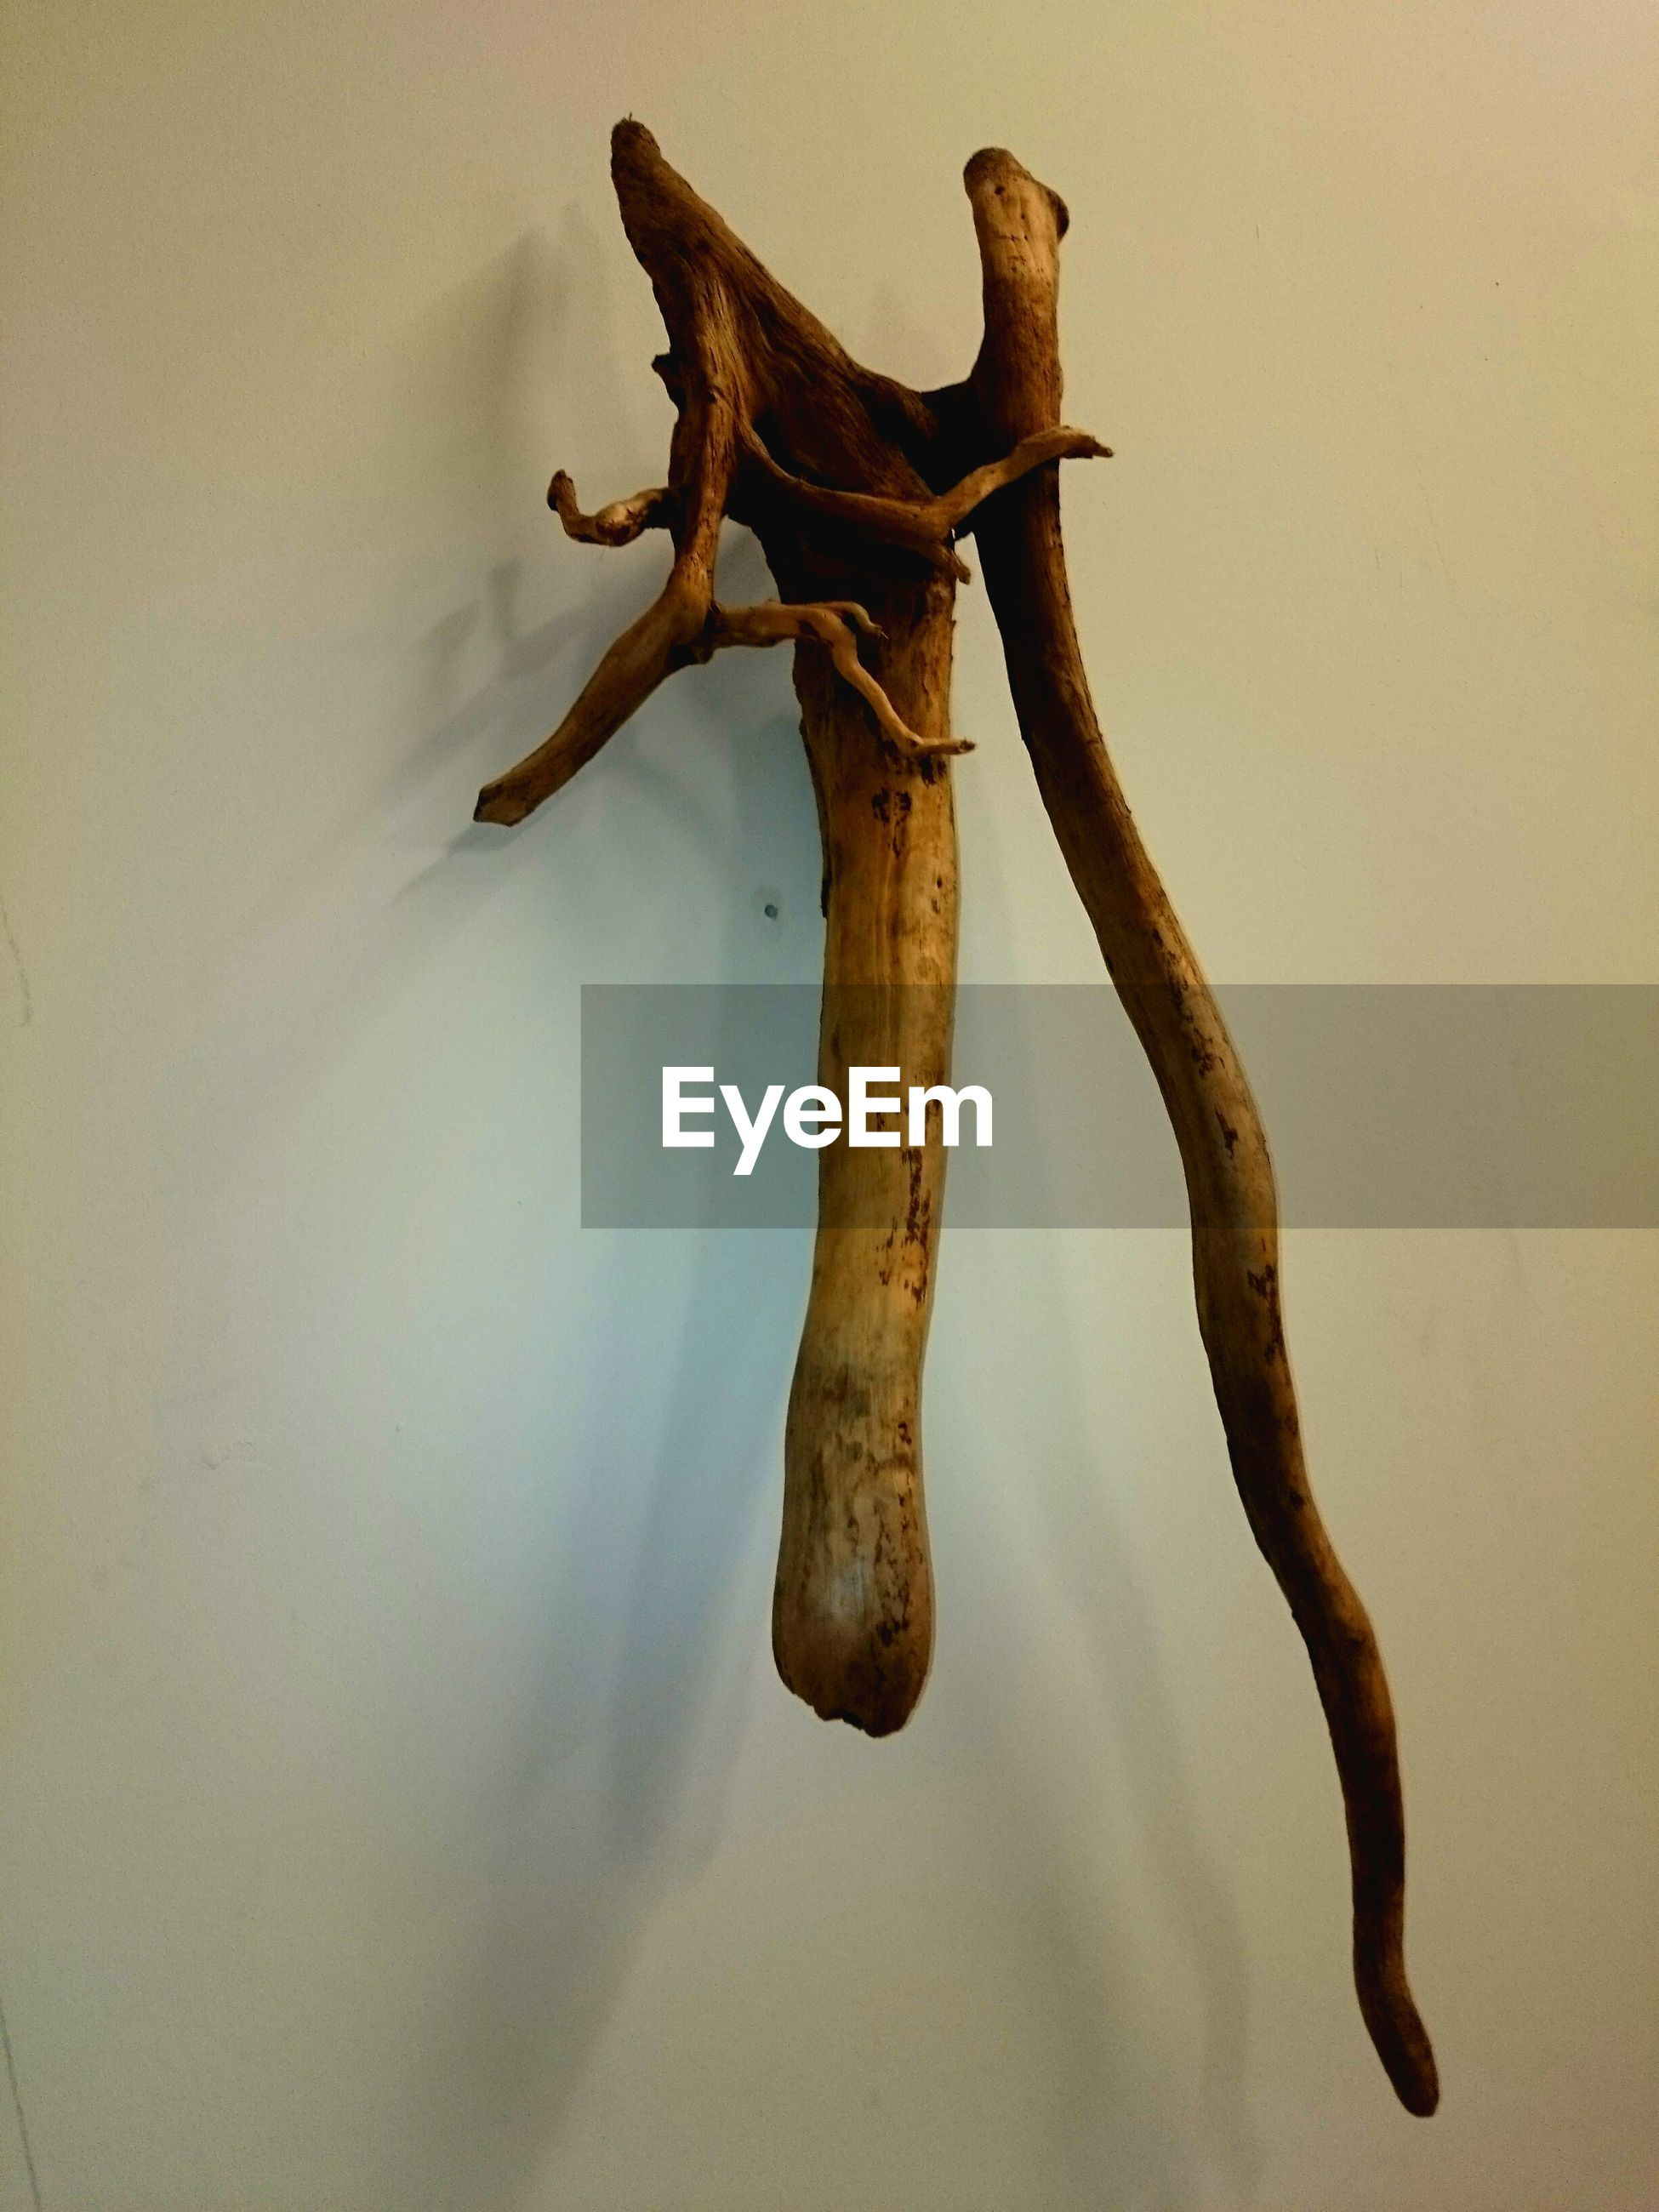 indoors, close-up, wood - material, wall - building feature, no people, low angle view, animal themes, day, nature, hanging, brown, wall, branch, tree trunk, dead plant, textured, death, old, one animal